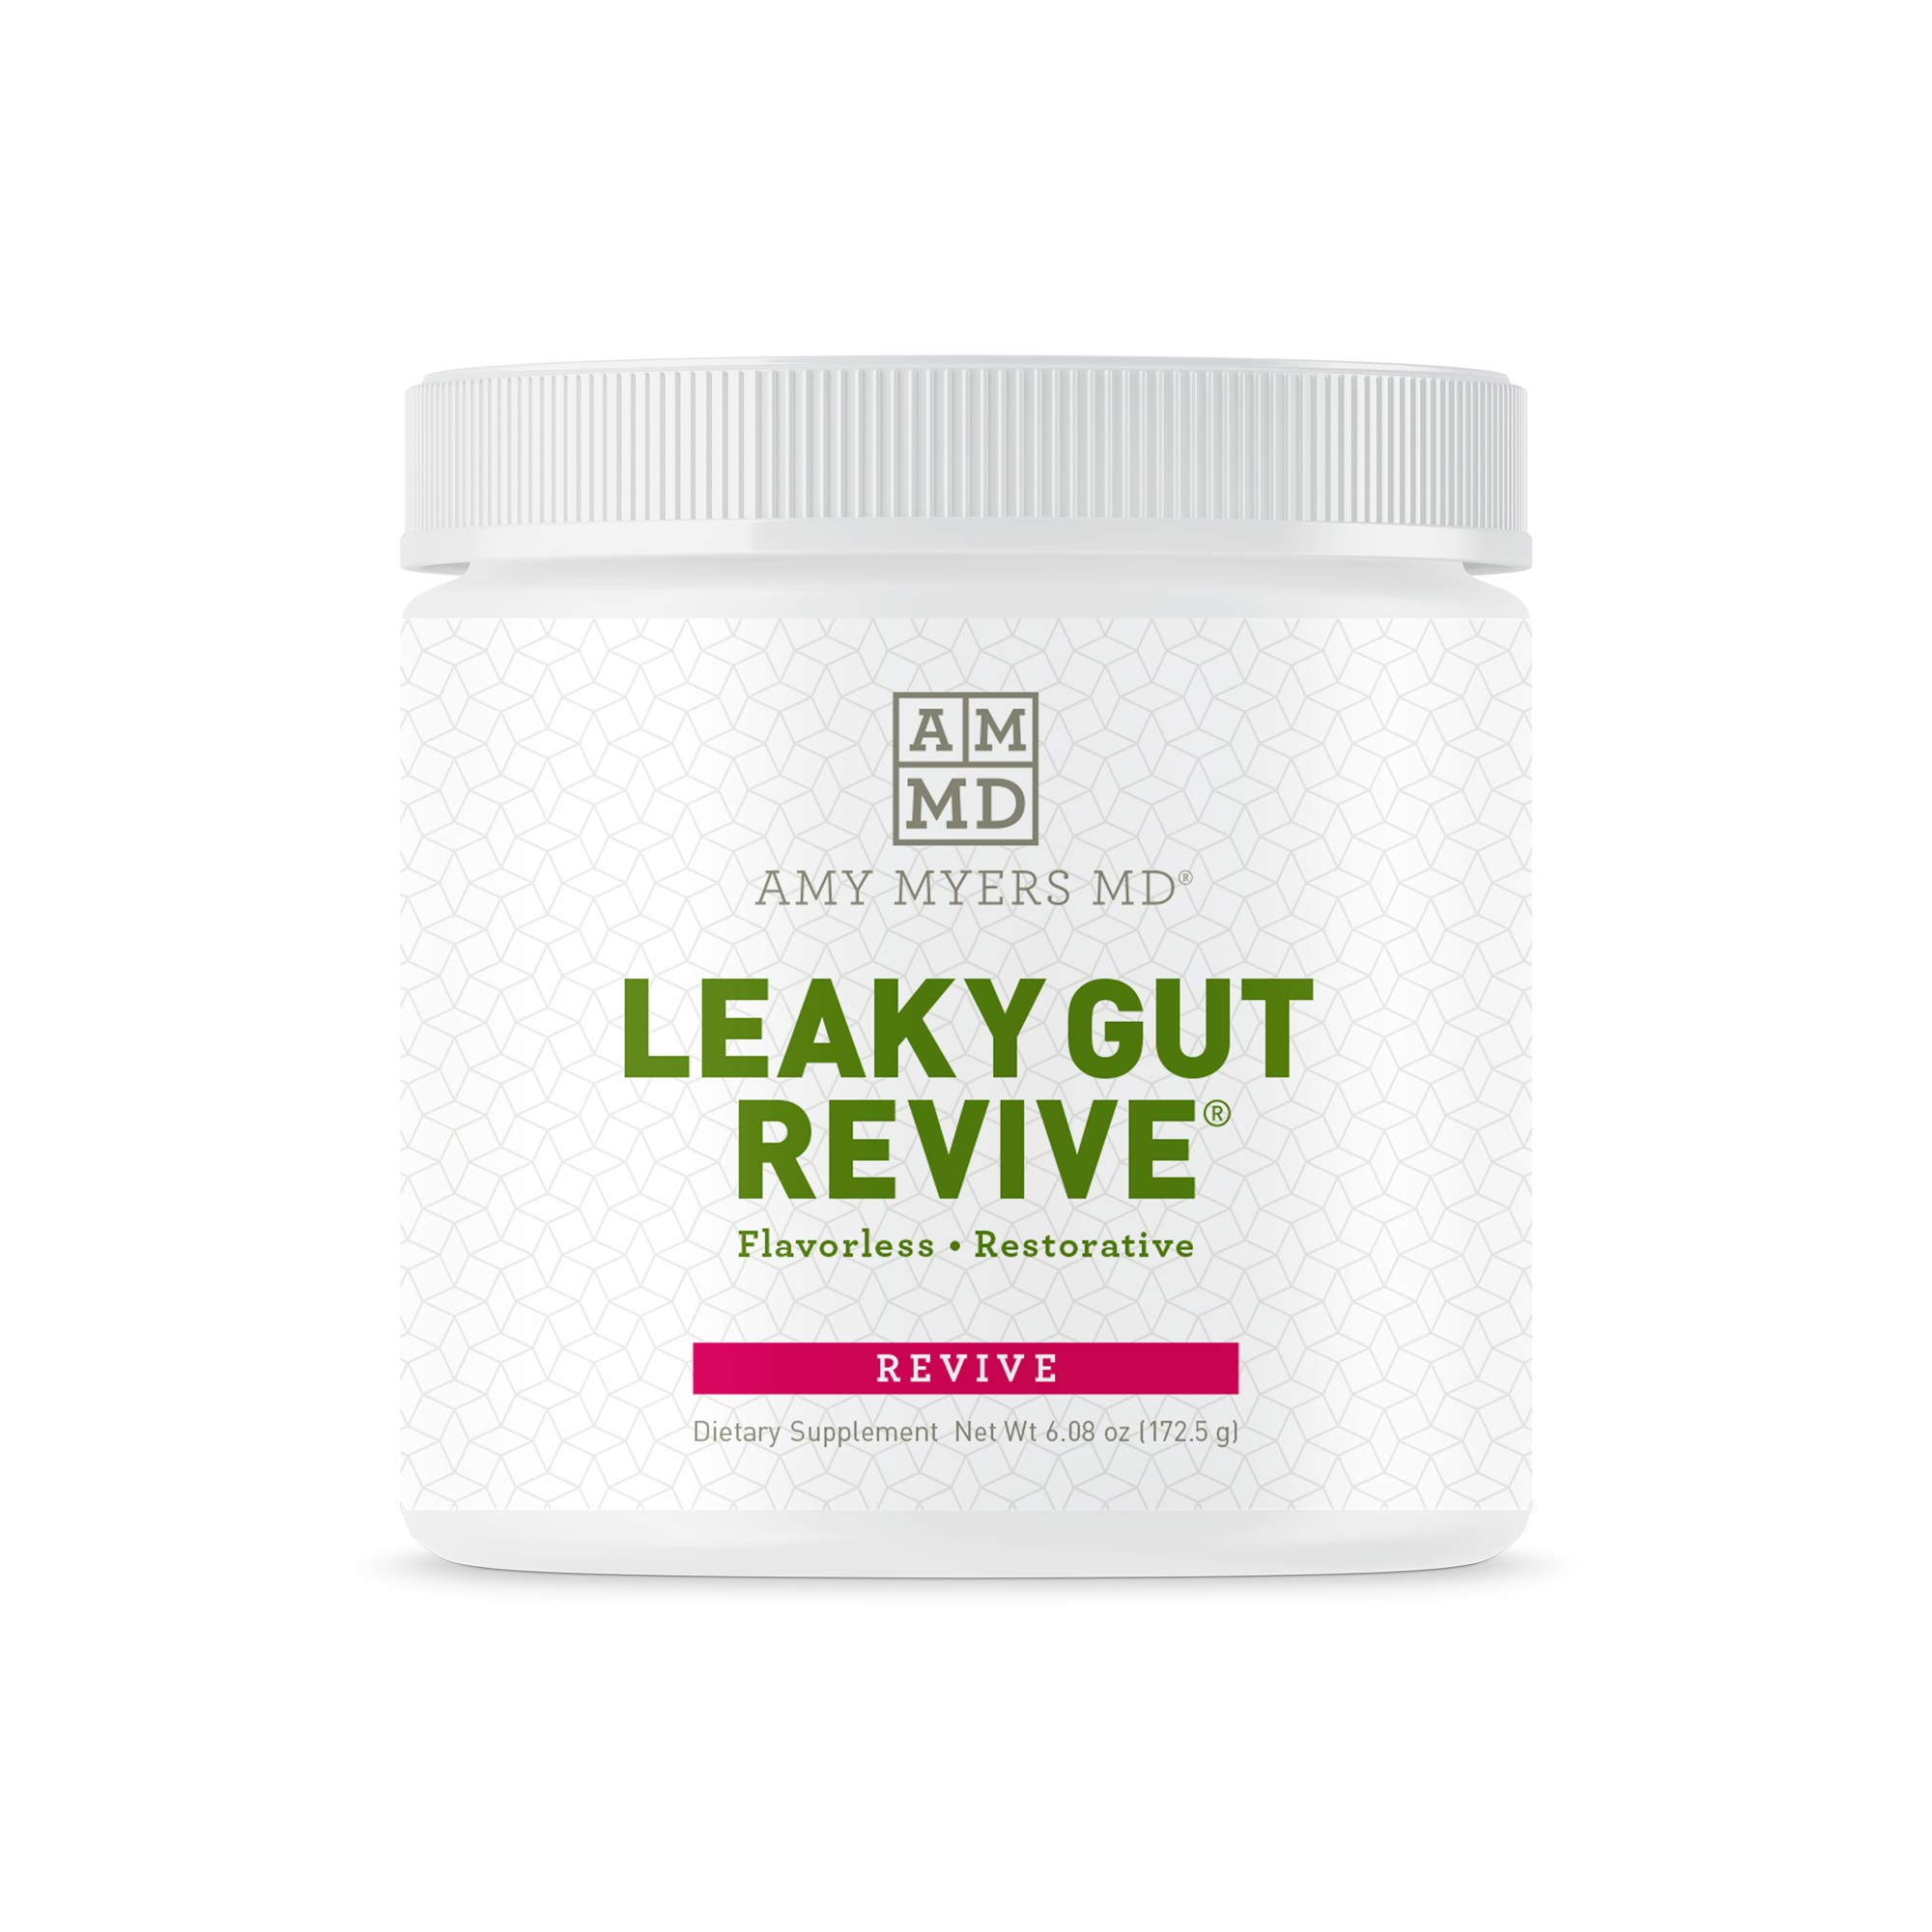 Dr. Amy Myers Leaky Gut Revive® Powder for Leaky Gut Repair- Reduce Symptoms Like Constipation, IBS, Diarrhea, Bloating, and Irregularity - Perfect Supplement to Naturally Maintain Healthy Gut Lining by Amy Myers, MD